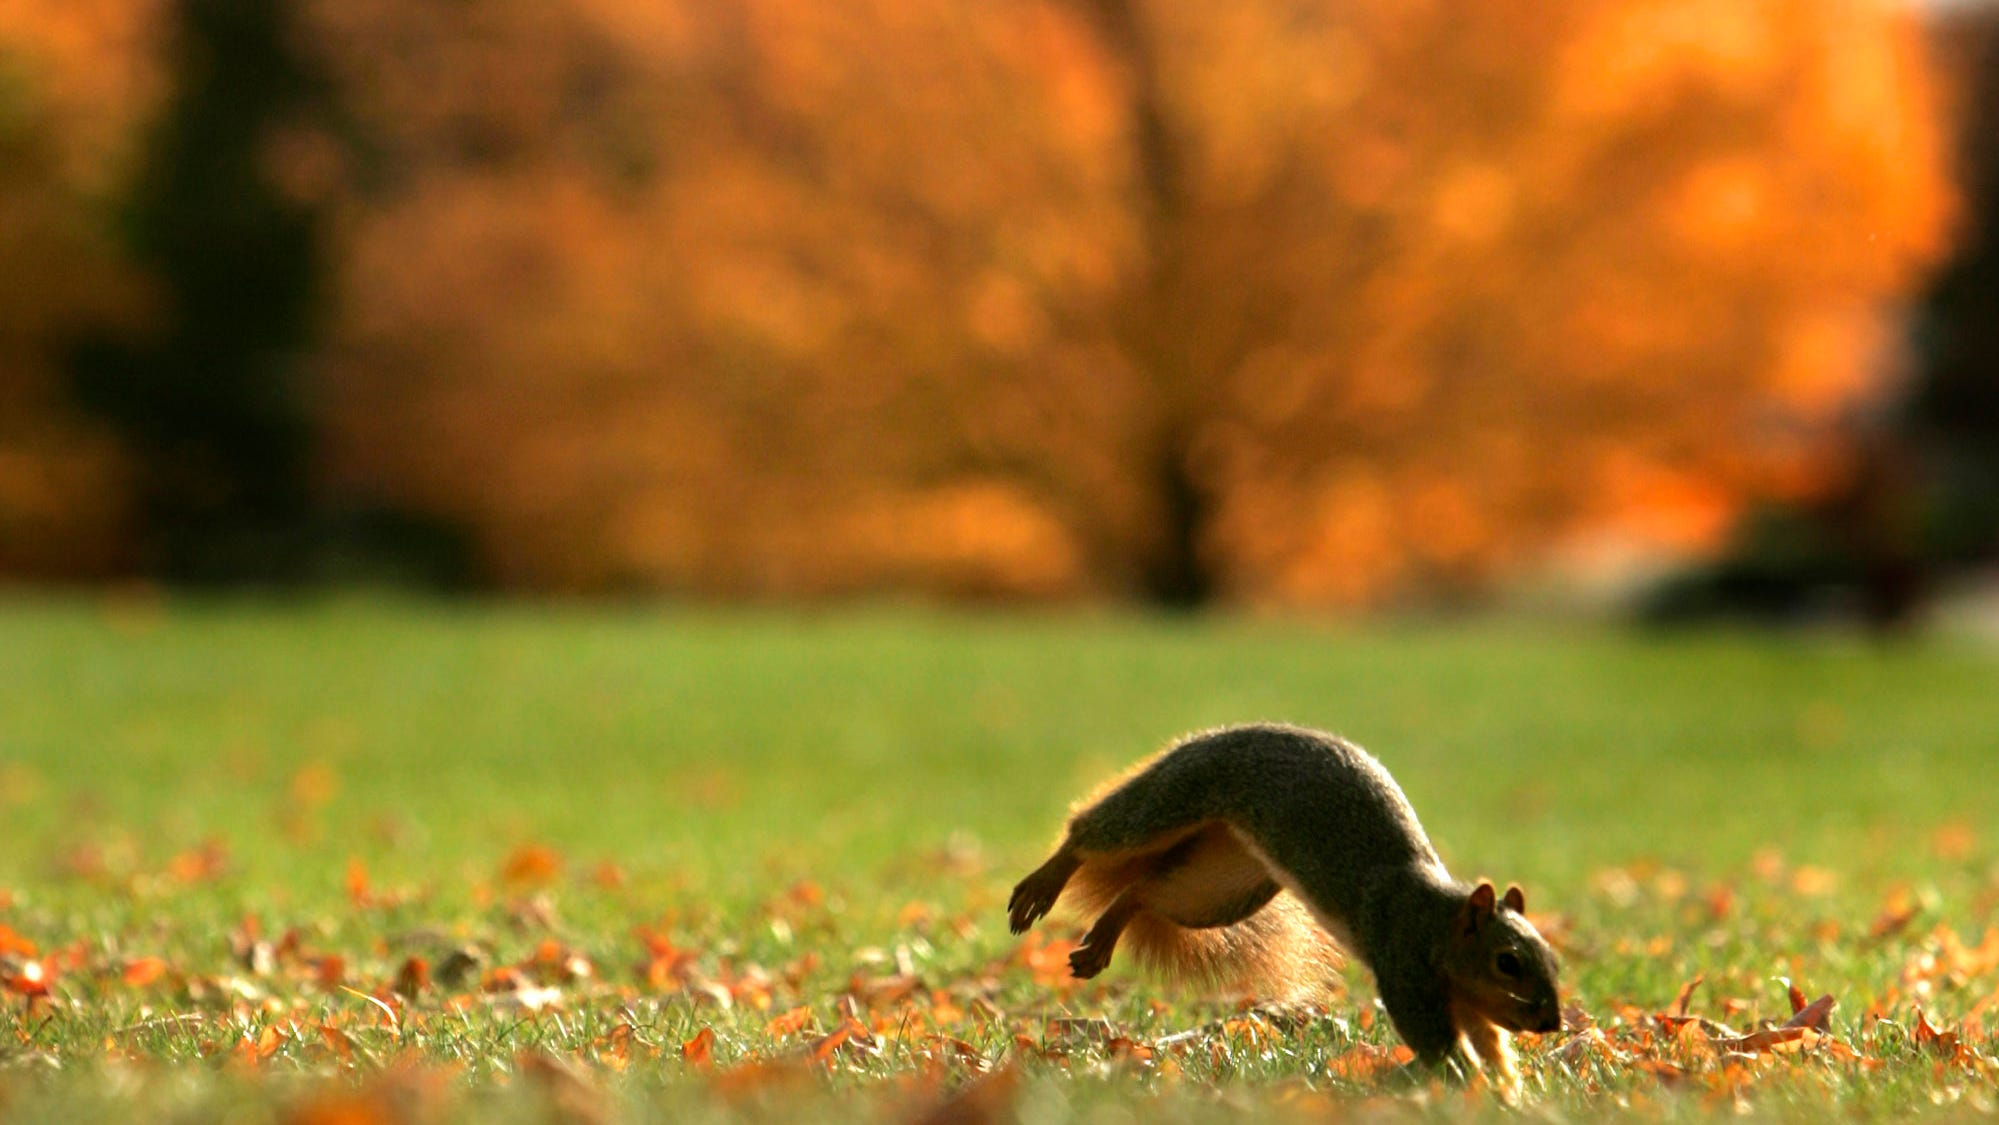 With fall here, it's time to get your lawn ready for a long winter's nap.